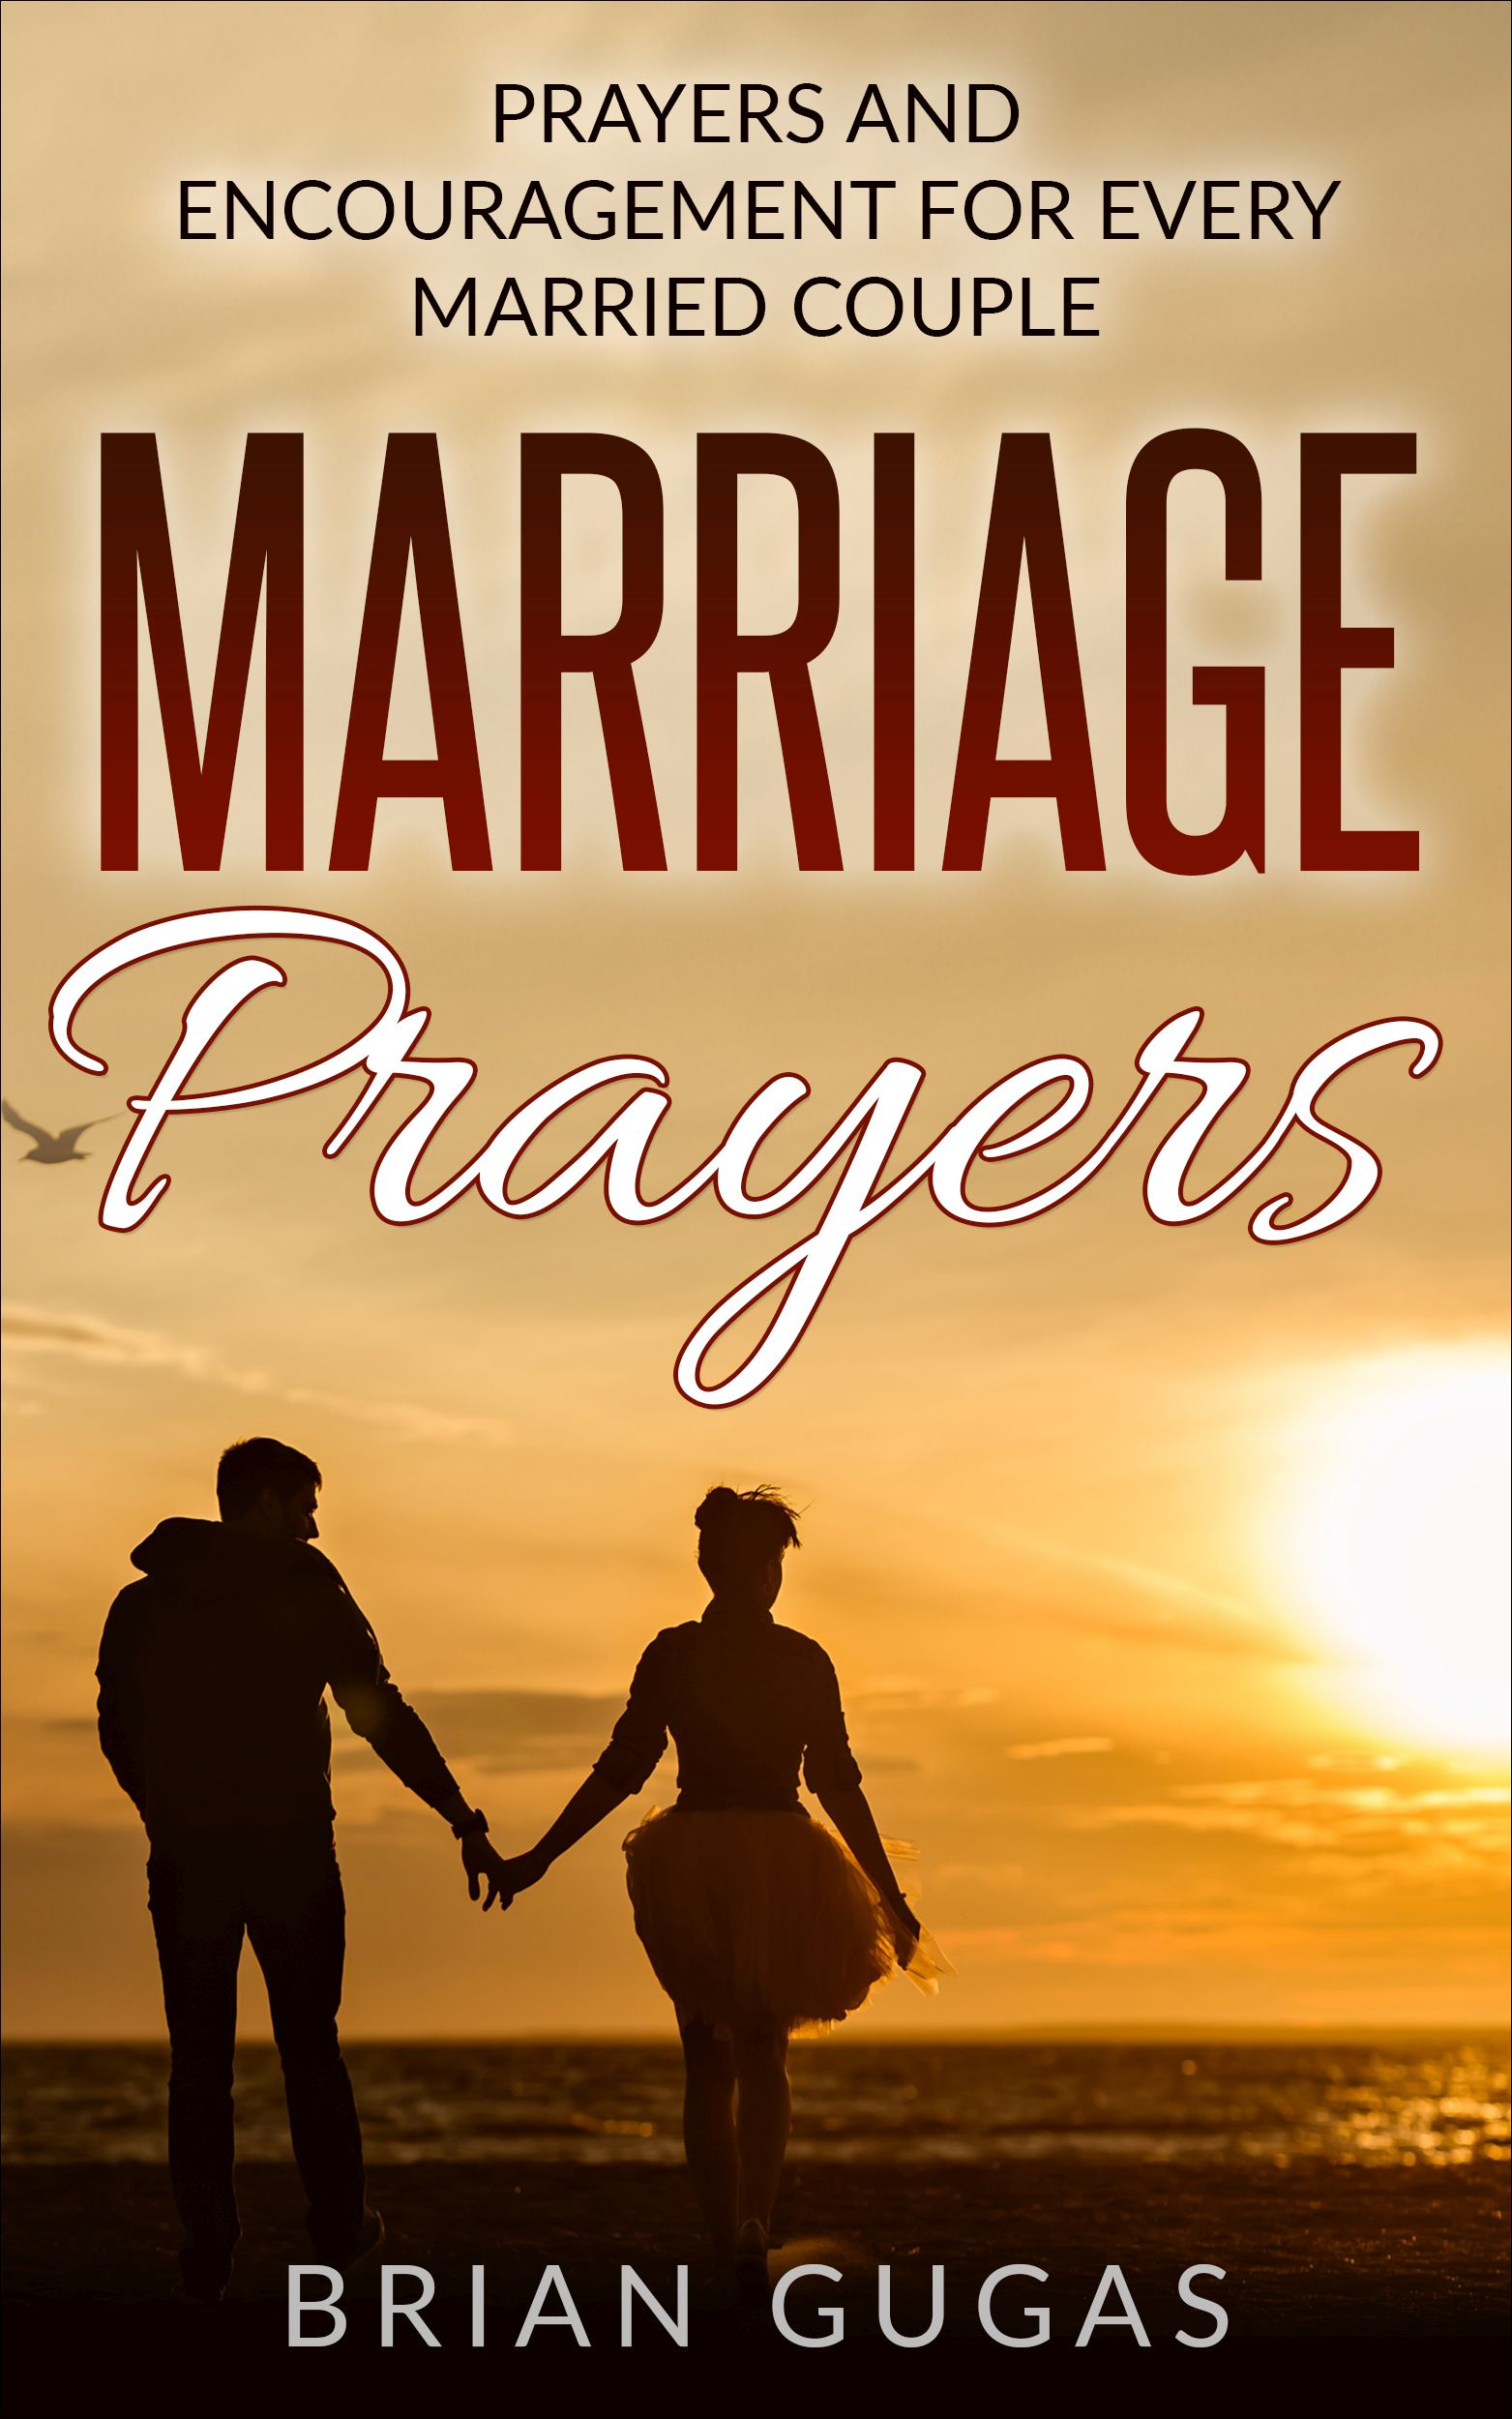 Marriage prayers: prayers and encouragement for every married couple